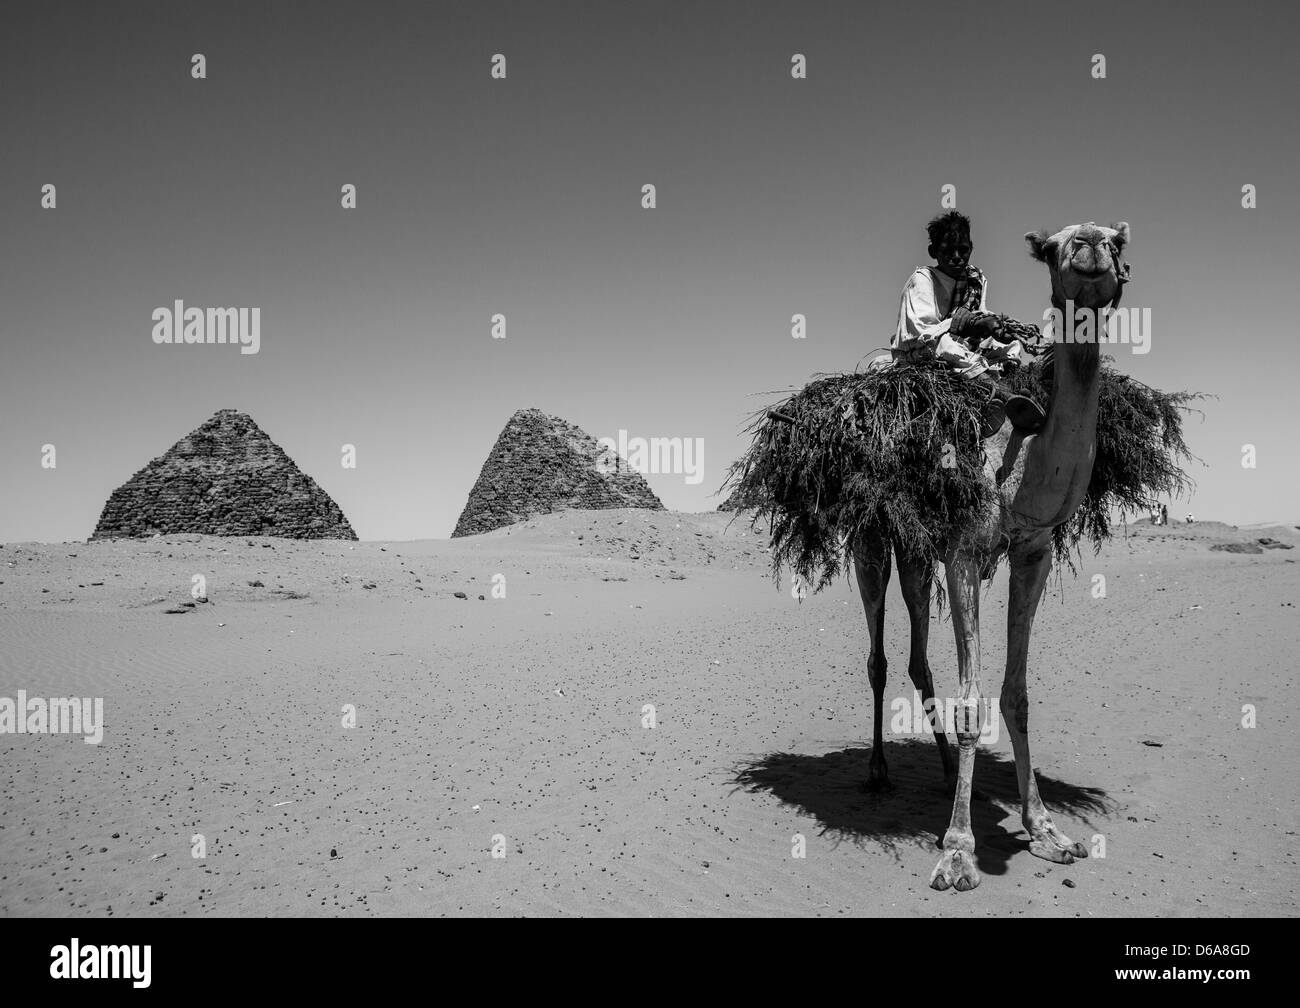 Kids On A Camel In Front Of The Royal Pyramids Of Napata, Nuri, Sudan Stock Photo